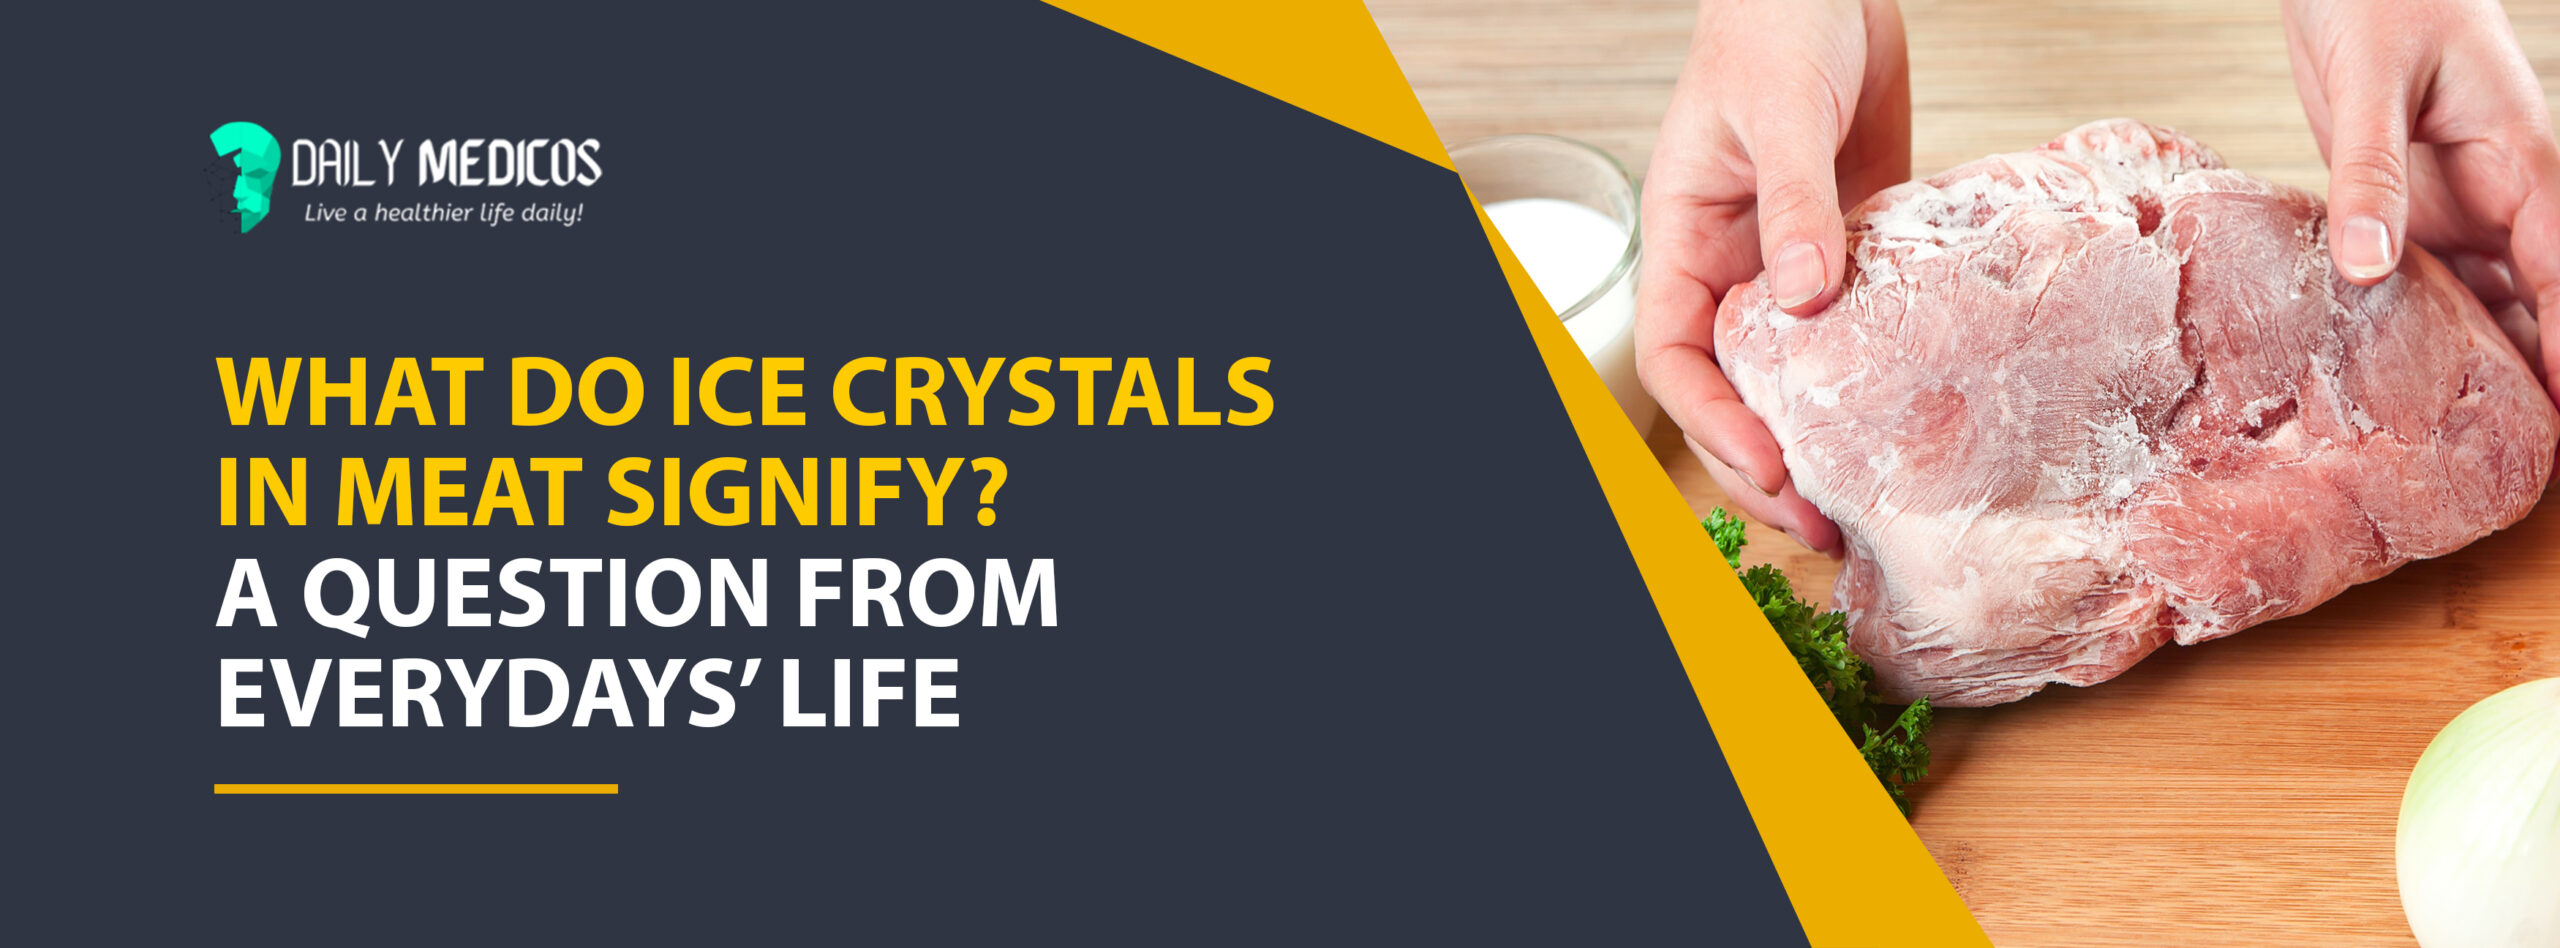 What Do Ice Crystals in Meat Signify? Are They Health Hazardous? [A Question From Everydays' Life] 23 - Daily Medicos